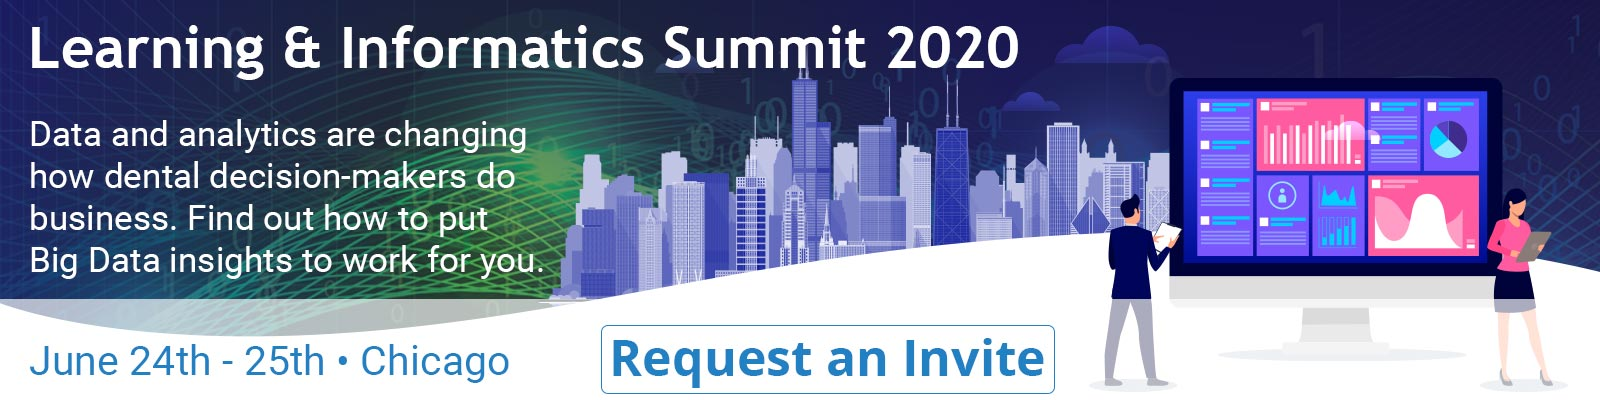 The P&R Learning & Informatics Summit 2020. Data and analytics are changing how dental decision-makers do business. Find out how to put Big Data insights to work for you. June 24th-25th Chicago.